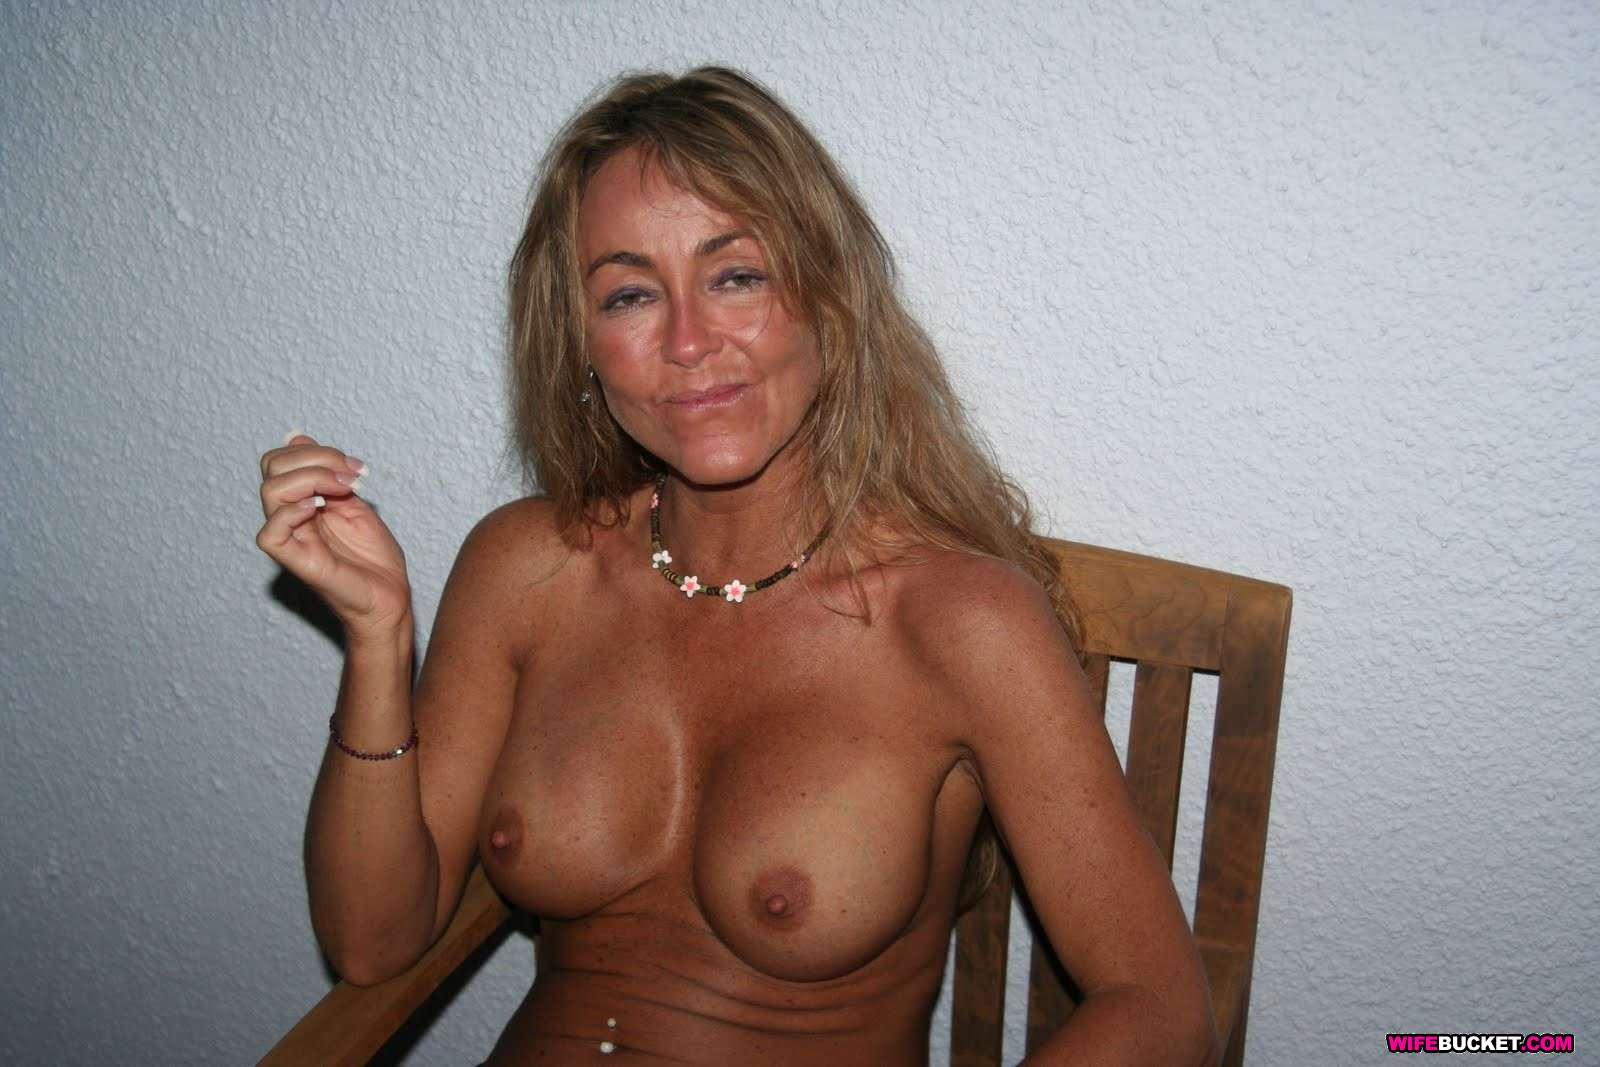 Sorry, milf amateur cruise ship swingers well understand